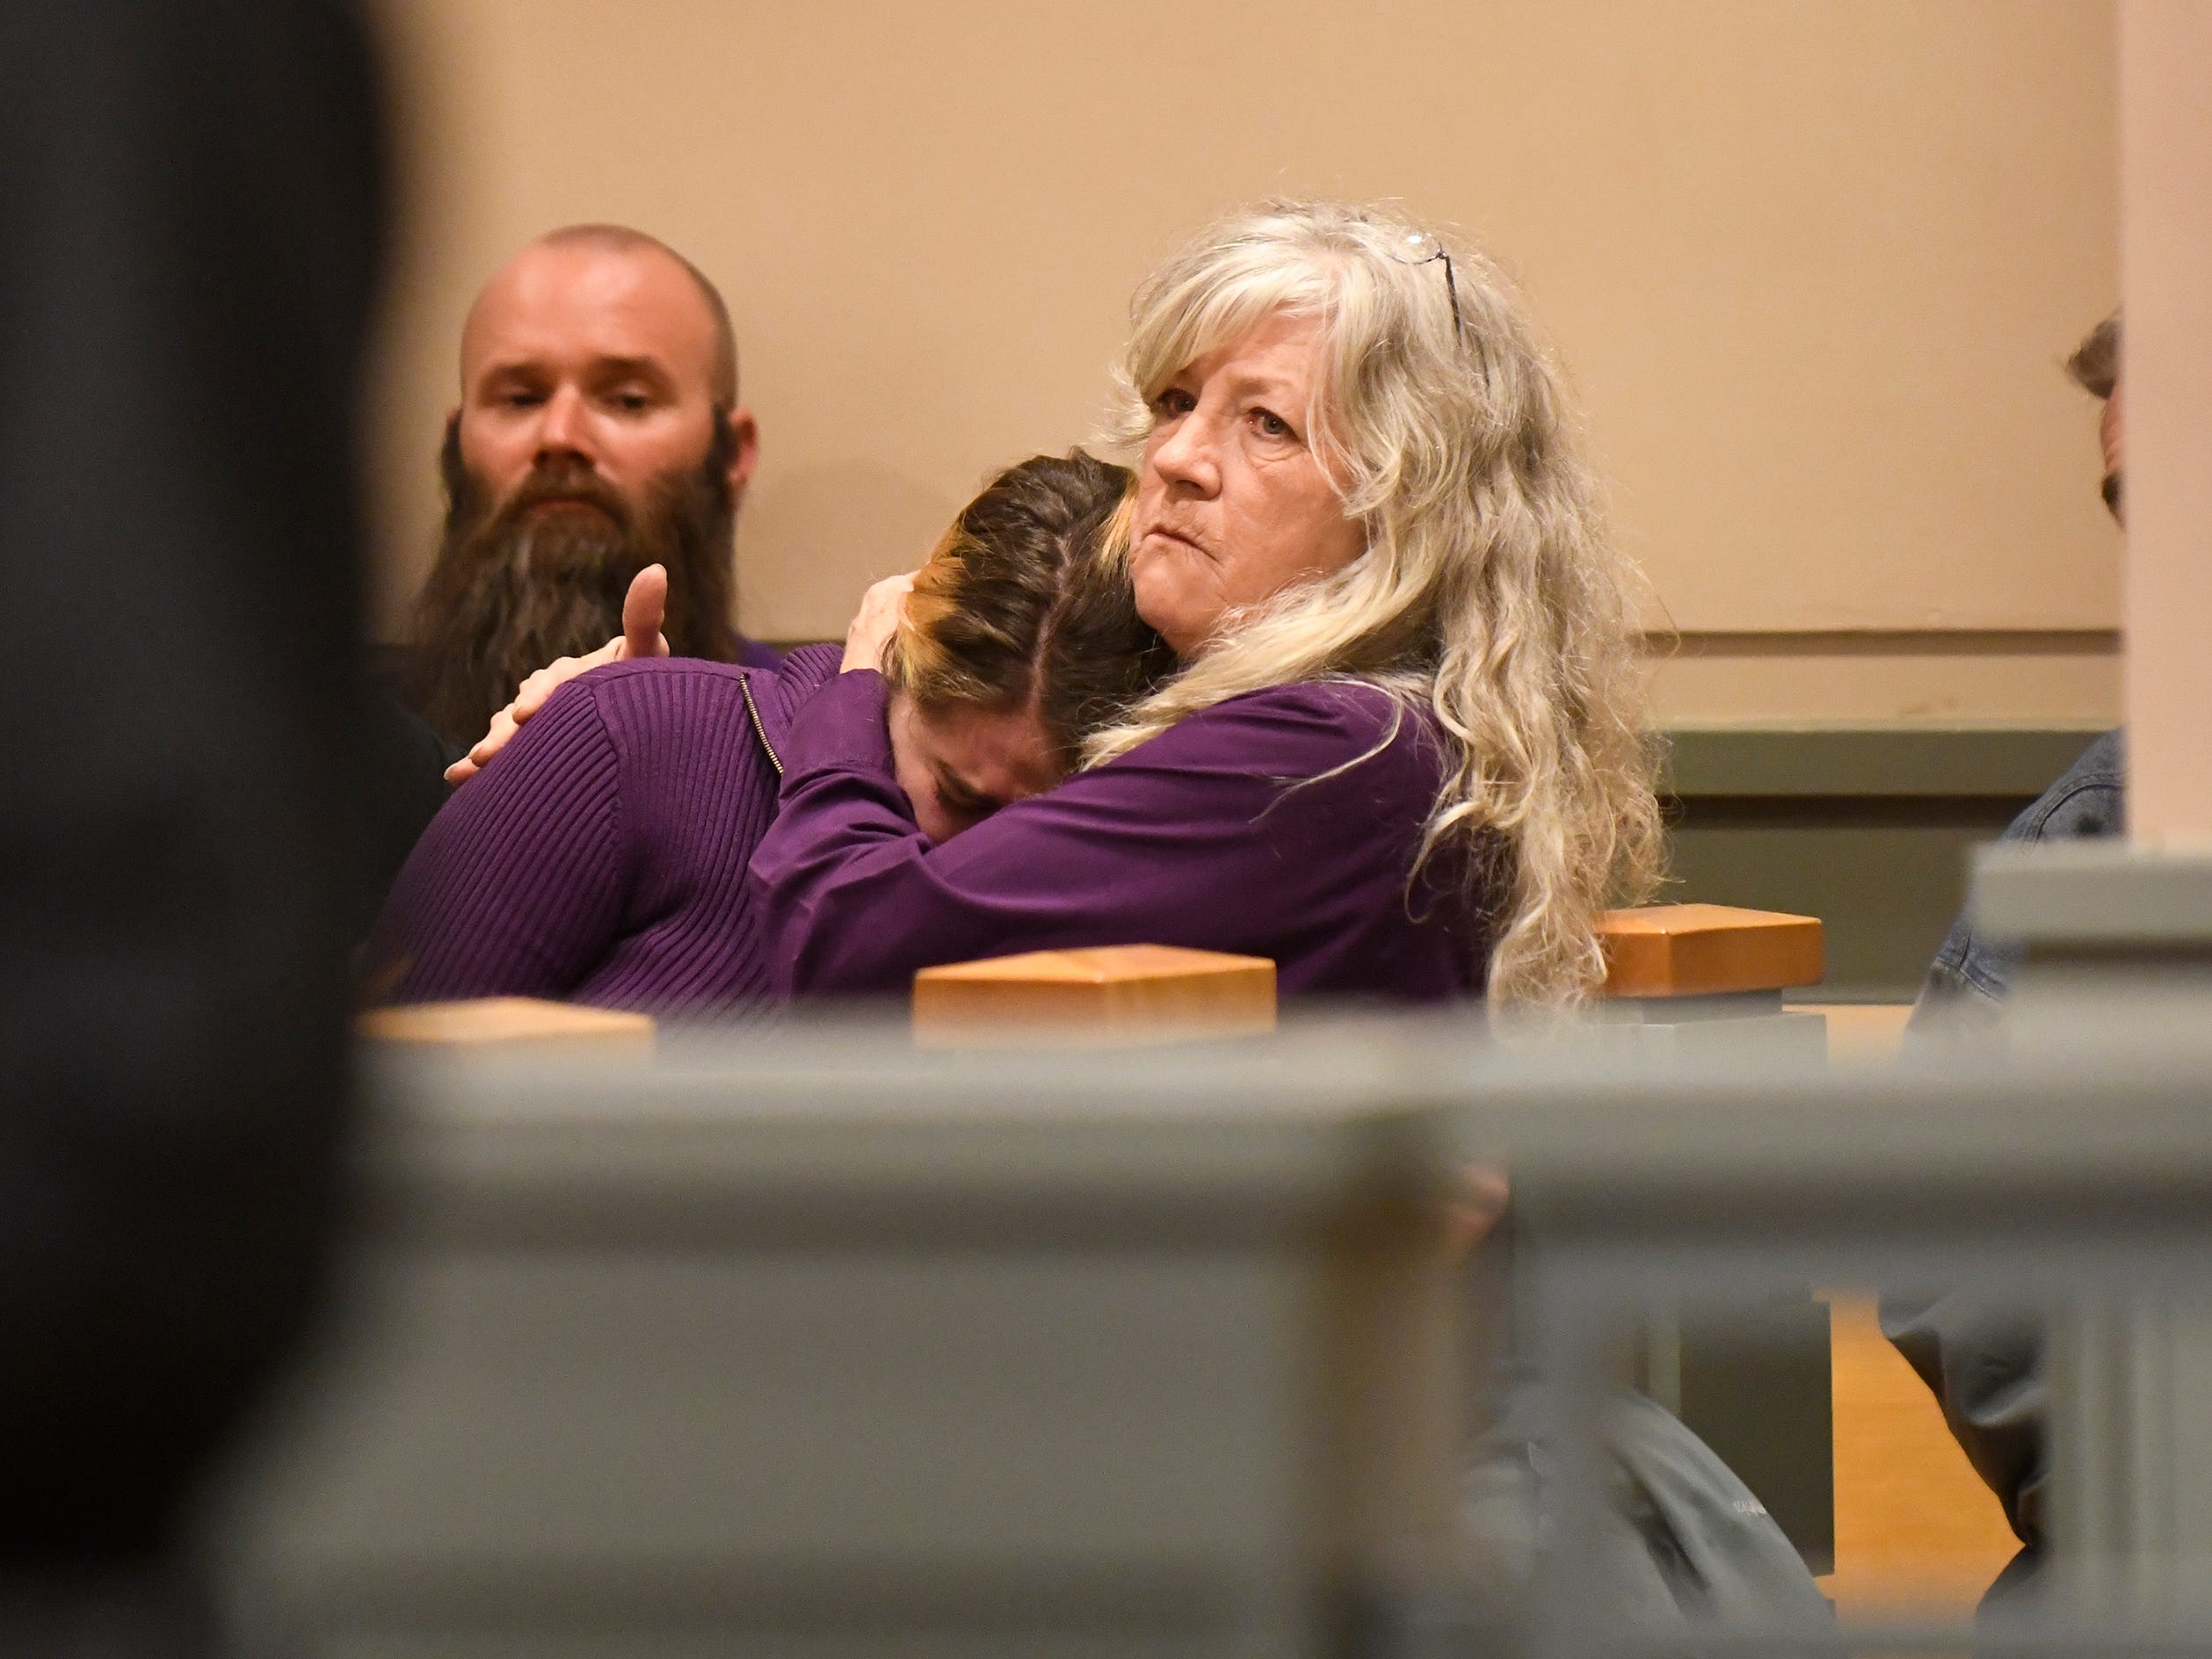 Emily O'Shea, the victim's mother, listens to statements during the sentencing of Jeremiah E. Monell in Cumberland County Superior Court on Friday, Mar. 15, 2019.